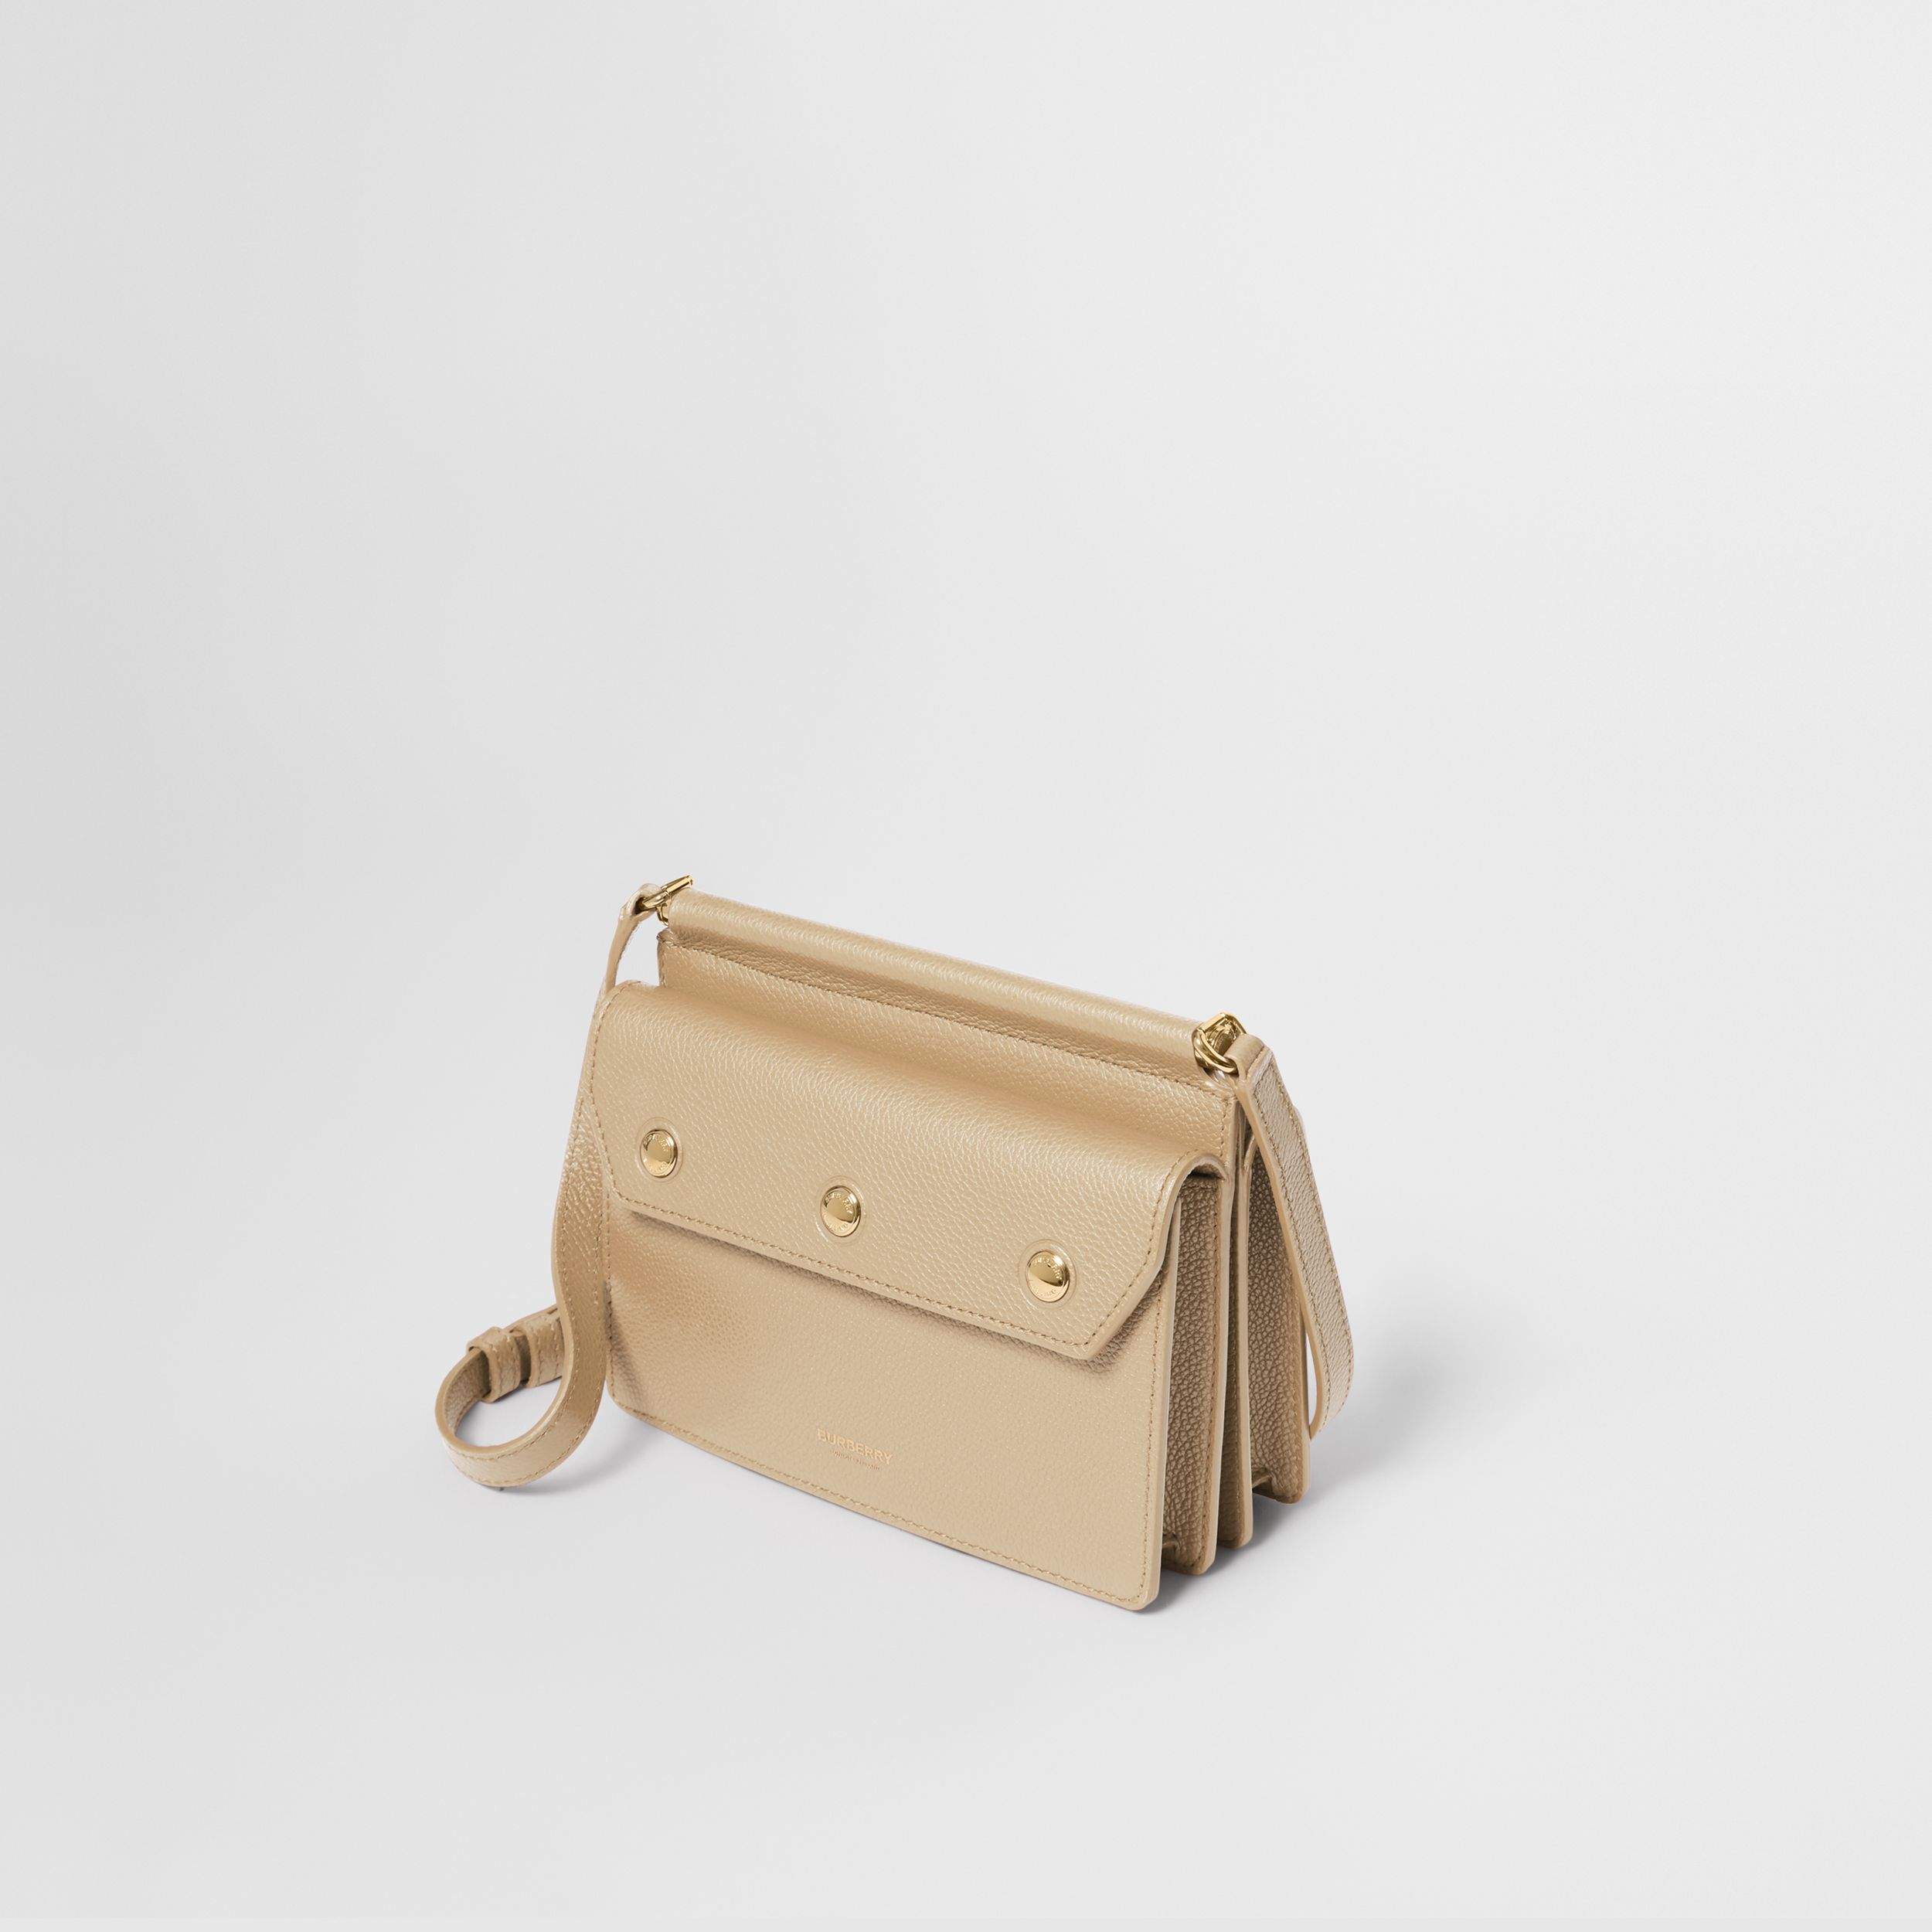 Mini Leather Title Bag with Pocket Detail in Honey - Women | Burberry Singapore - 4